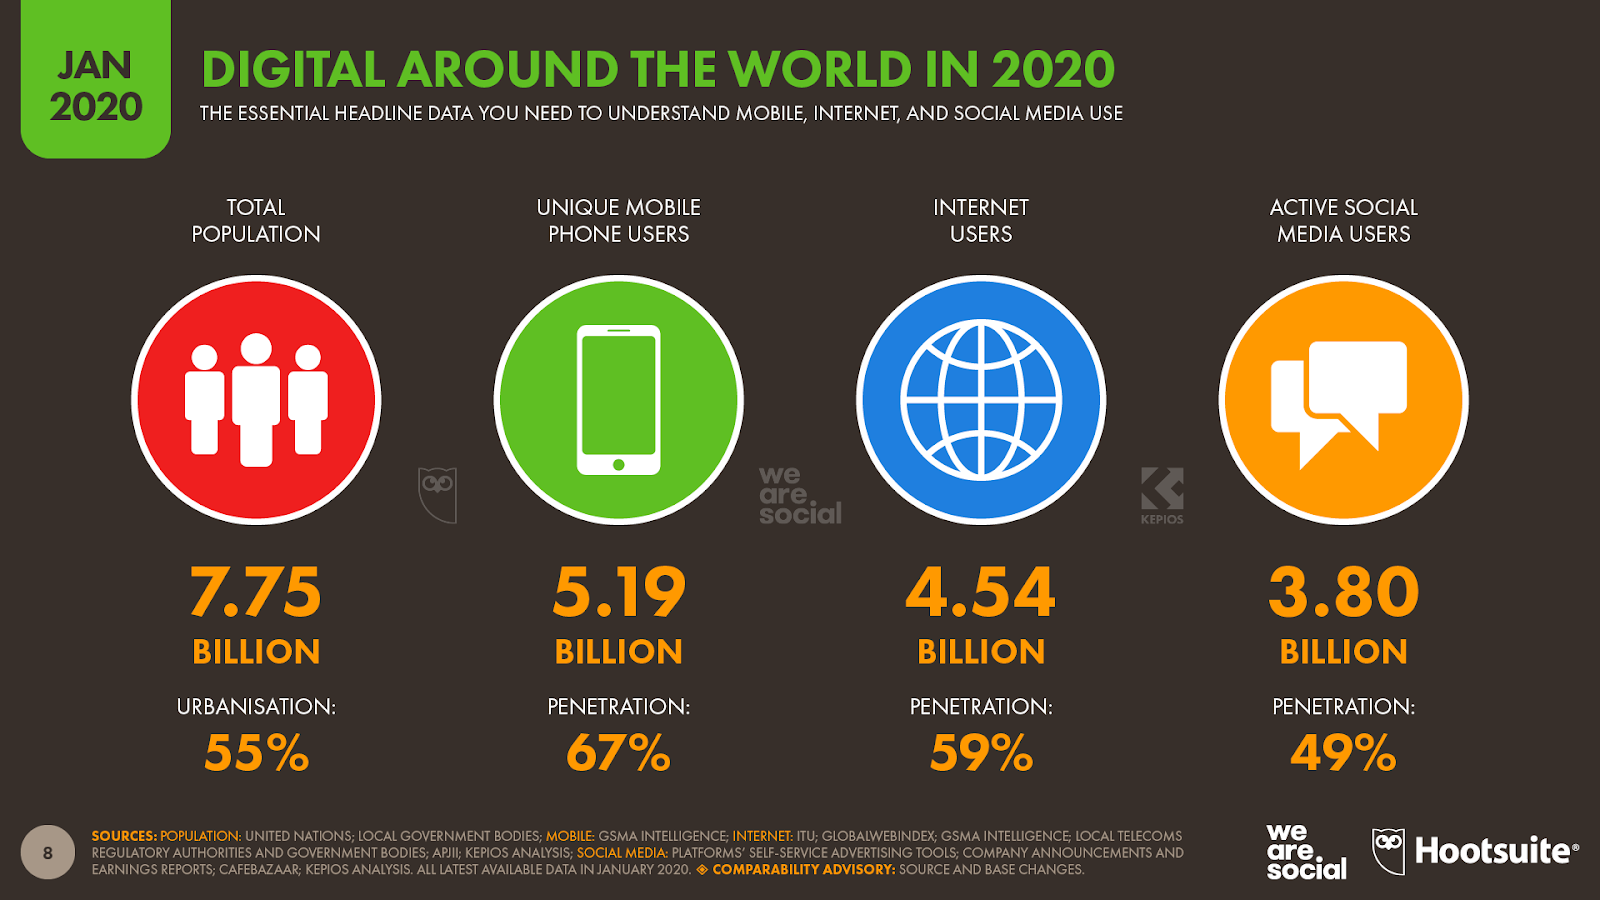 digital around the world in 2020 social media users